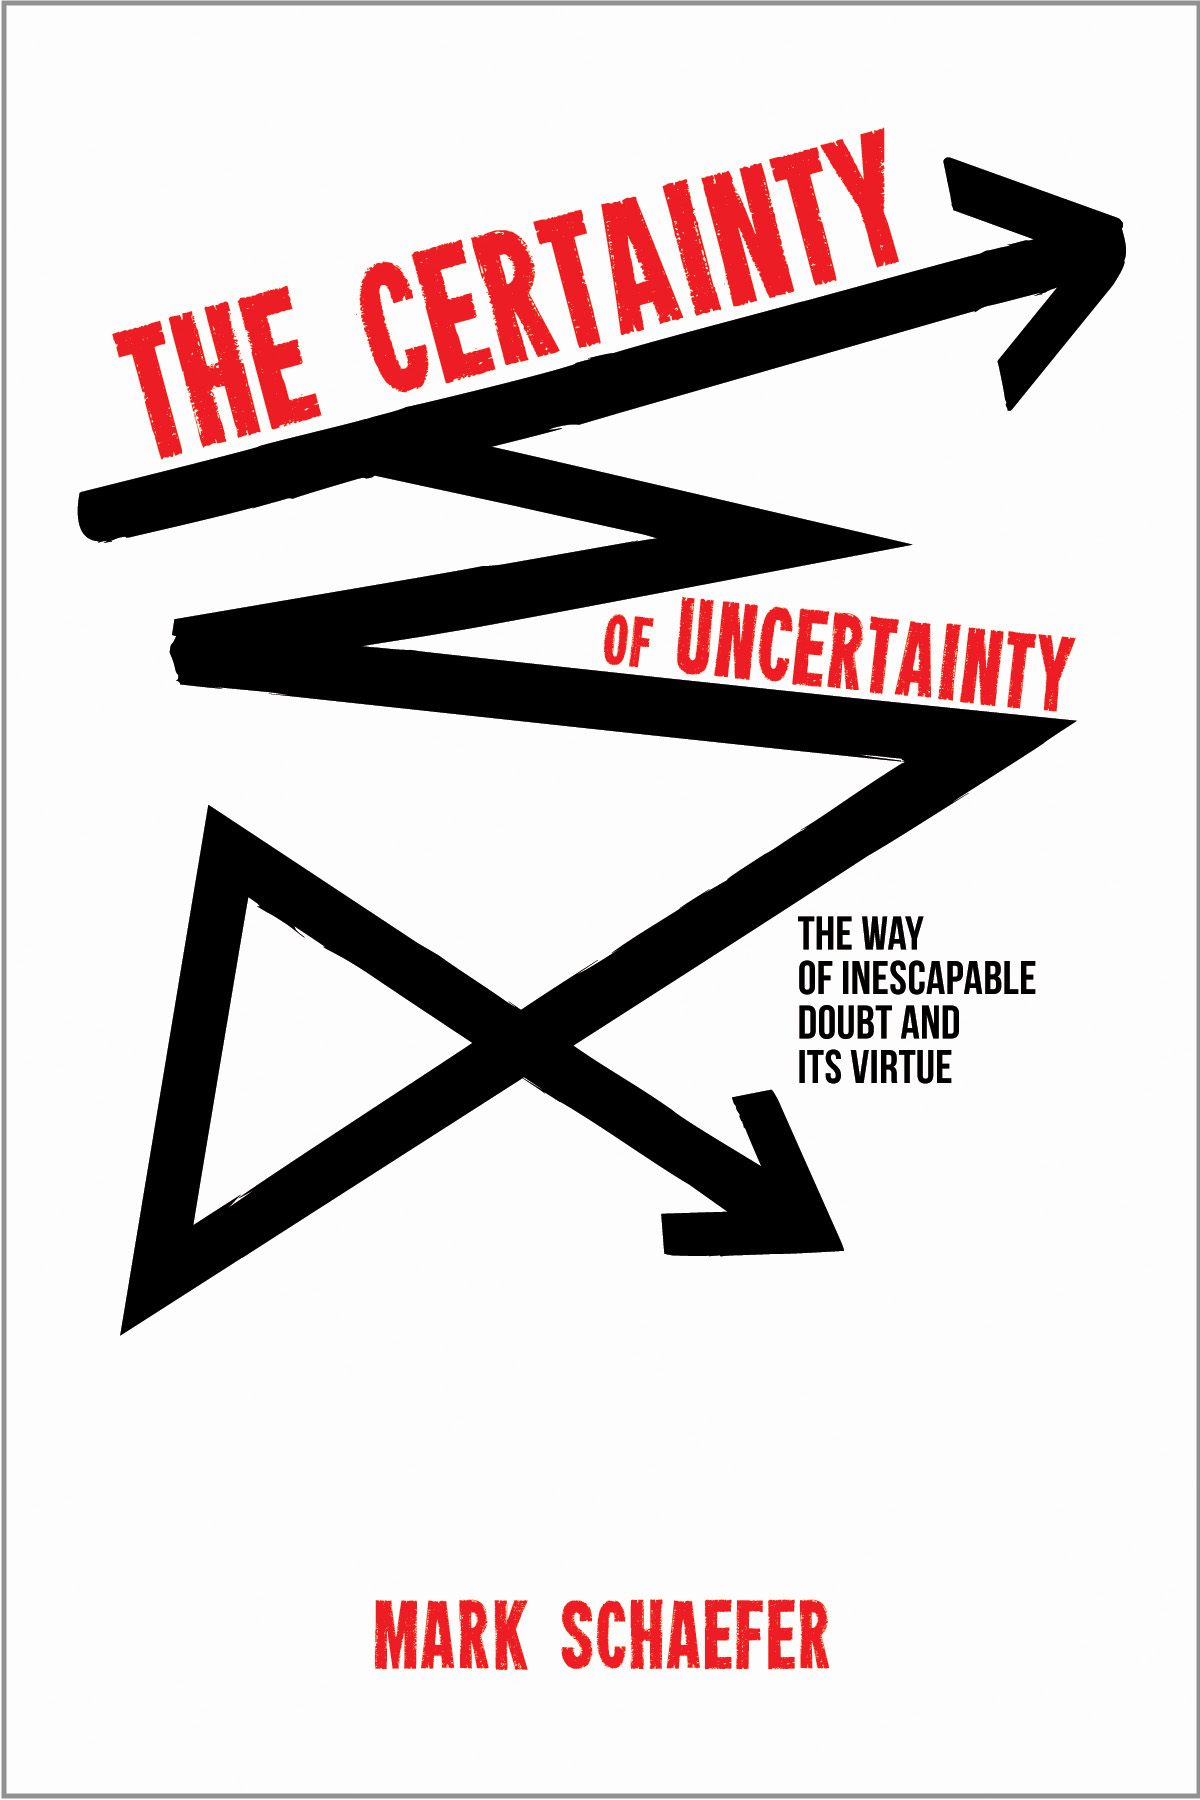 The Certainty Of Uncertainty Explores The Question Of Certainty By Lo Ng At The Reasons Human Beings Crave Certainty And The Responses We Fashion To Help